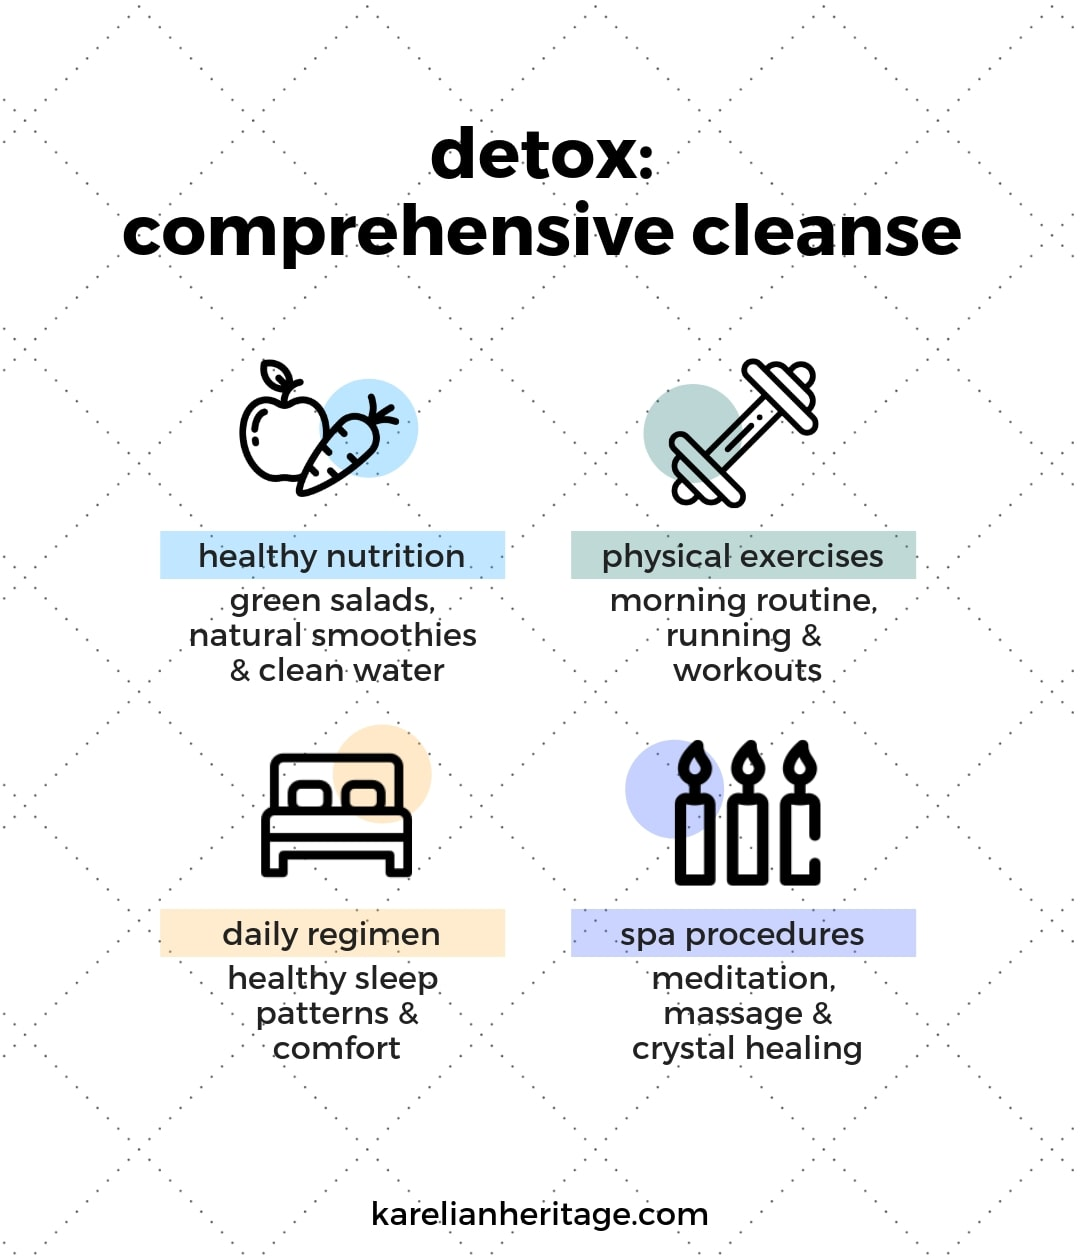 detox-comprehensive-cleanse